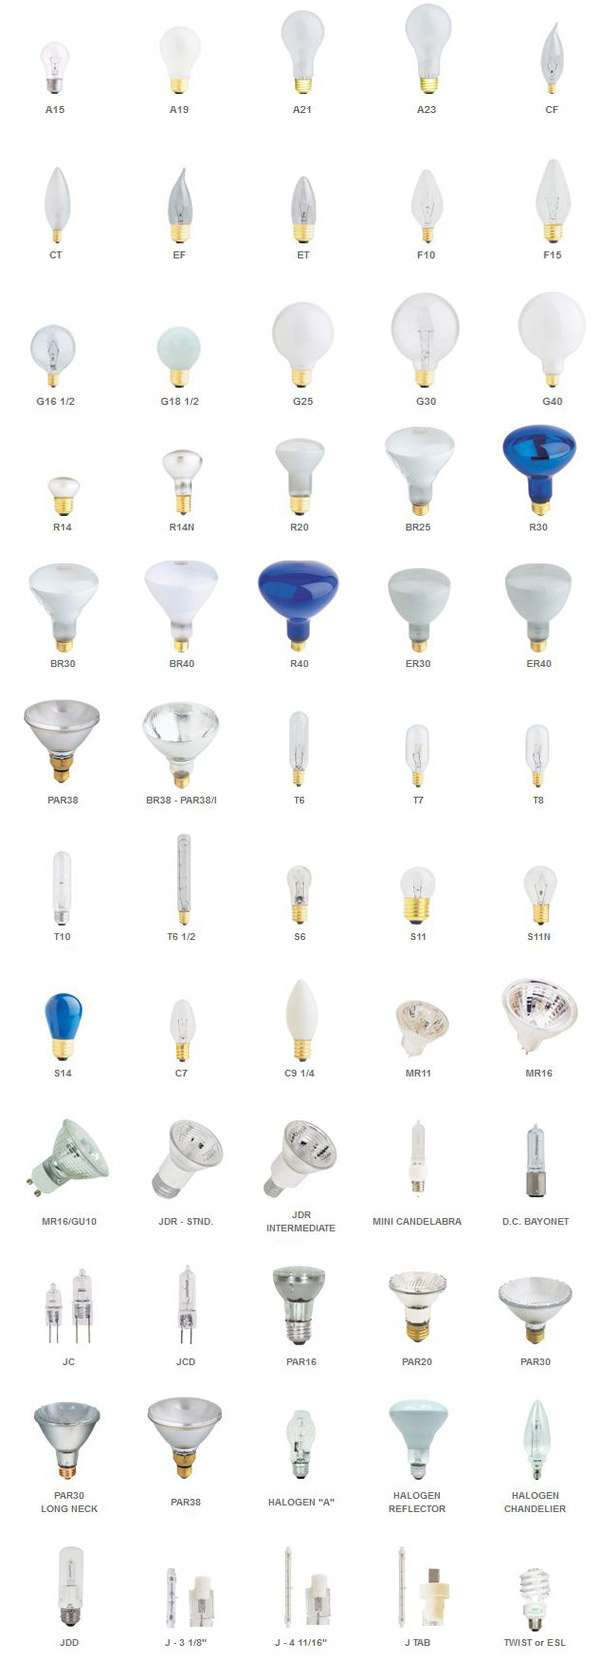 Denver Lighting   Progressive Energy Solutions   Education   Bulb Types